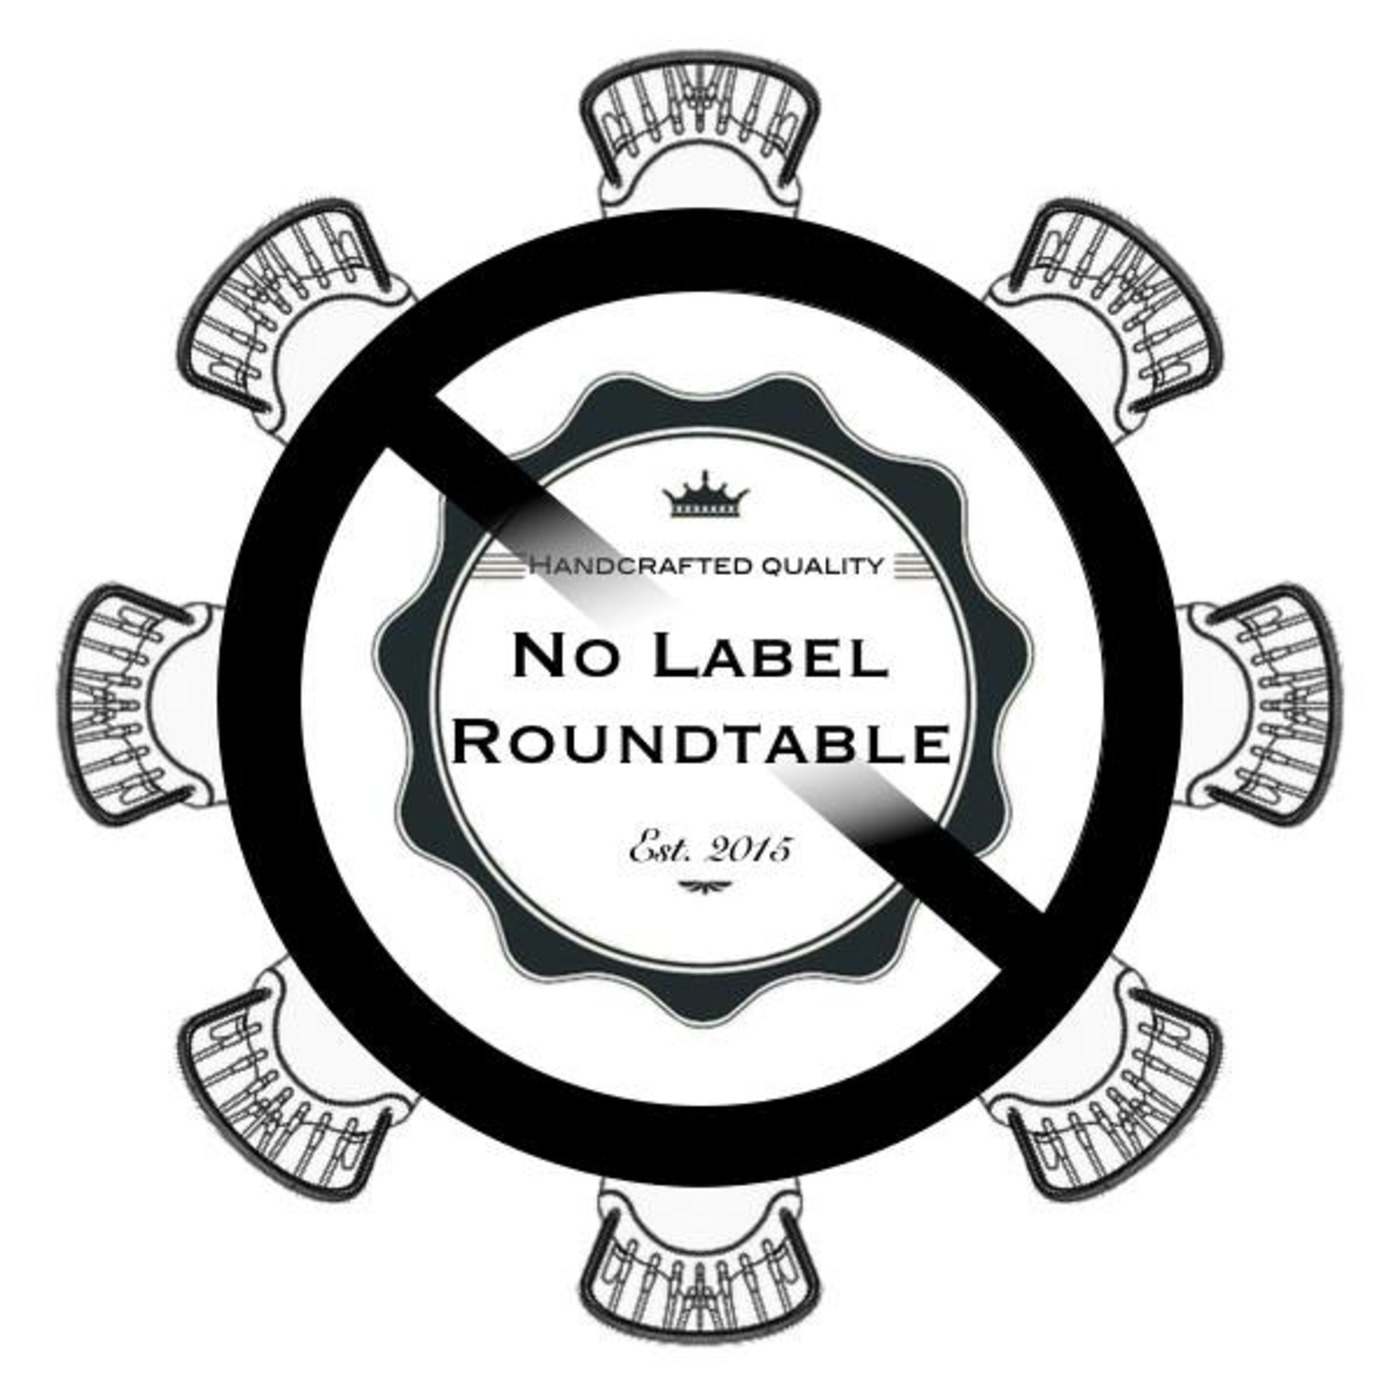 No Label Roundtable